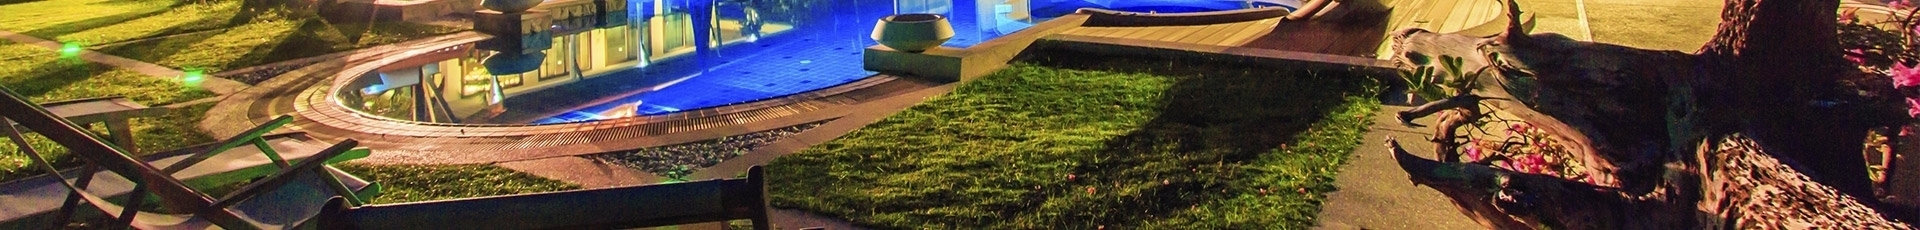 Commercial Synthetic Grass Installation Sunshine Coast